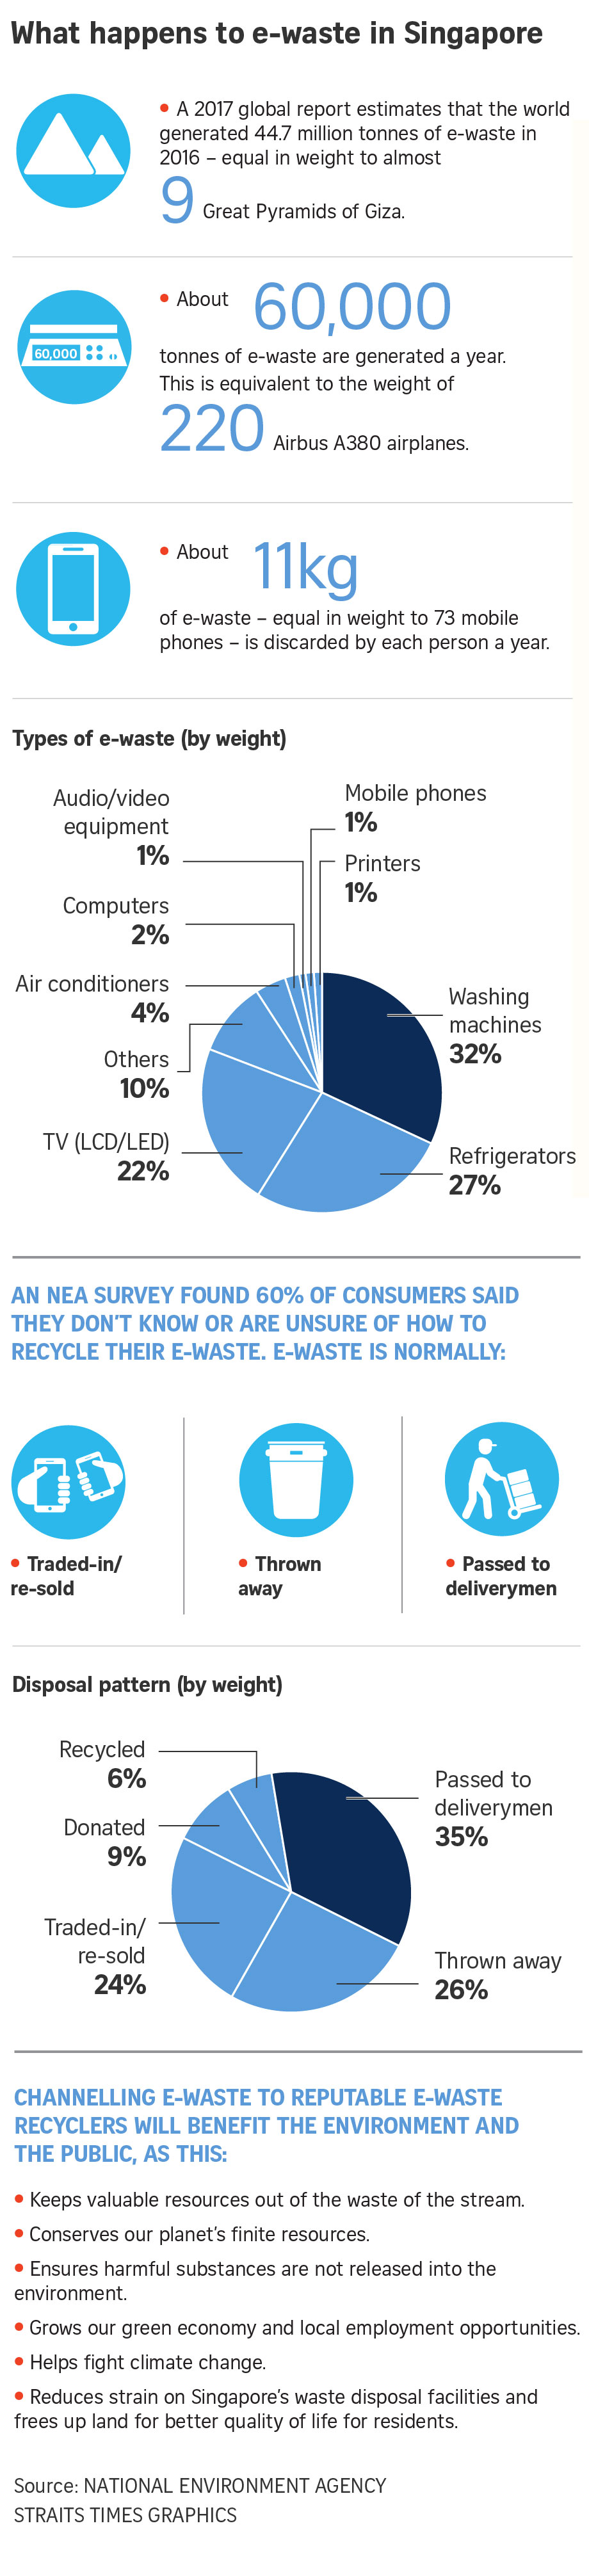 Cleaning Up Electronic Waste (E-Waste)